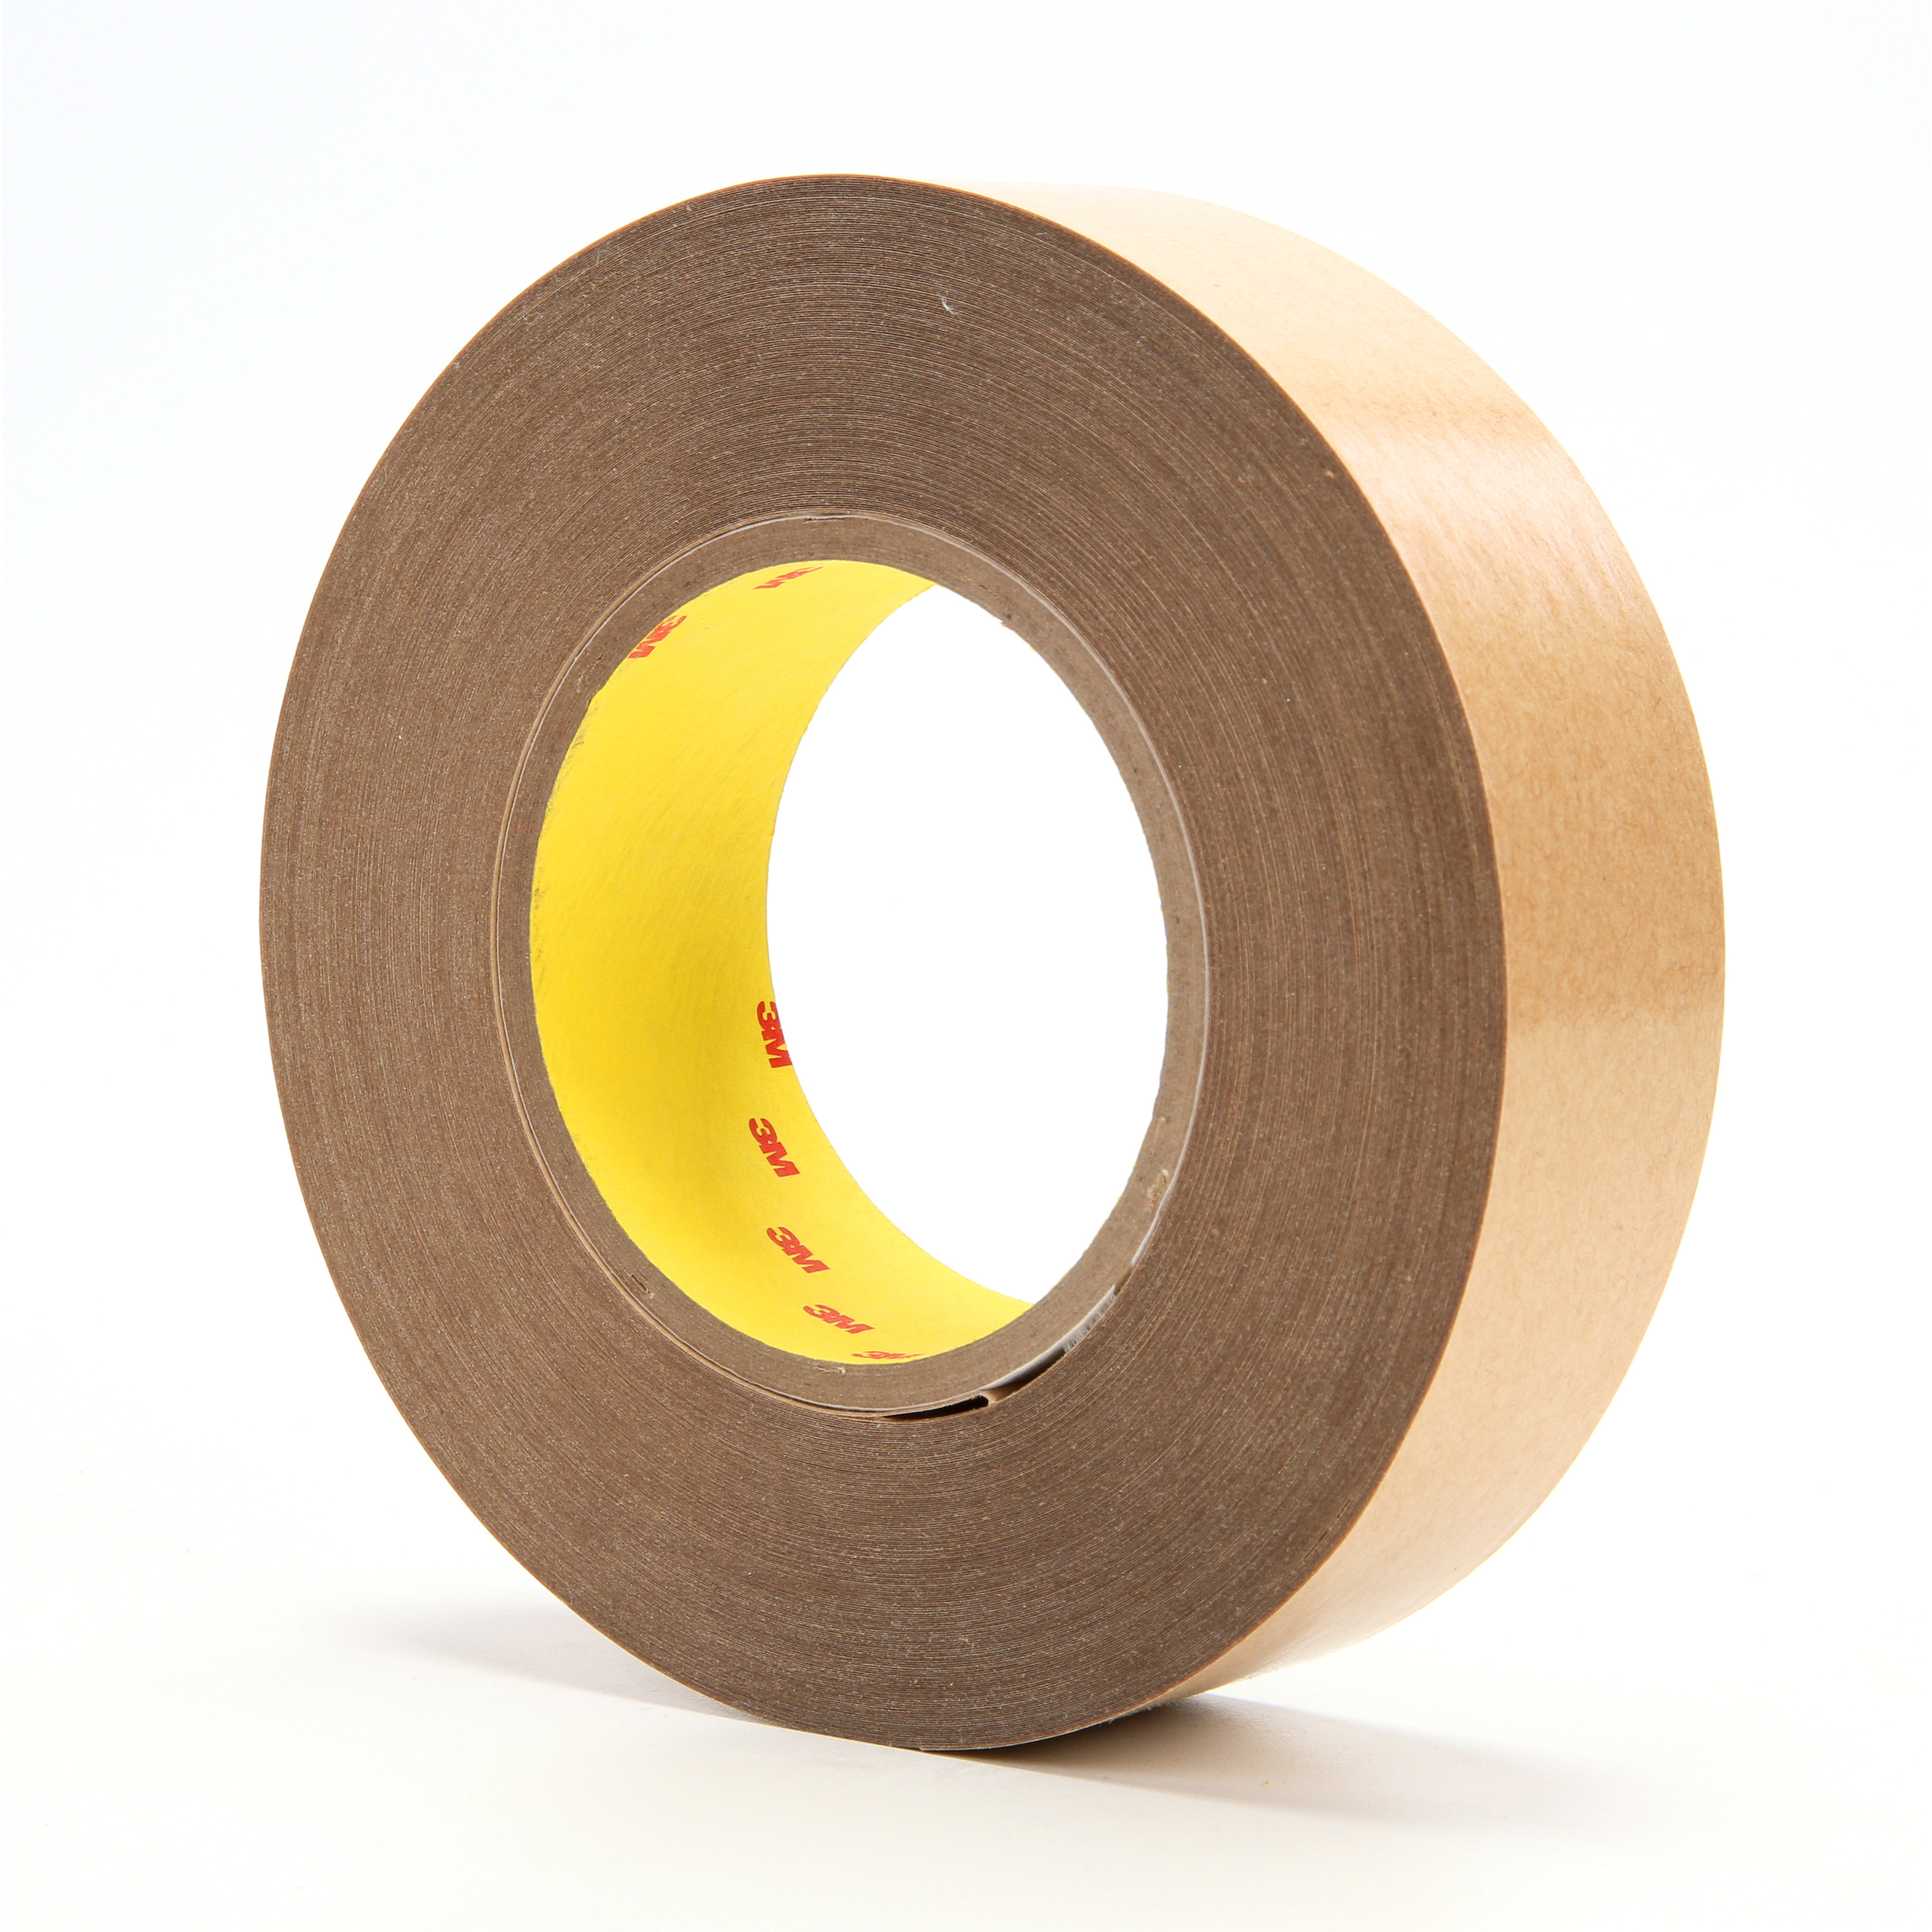 3M™ Adhesive Transfer Tape 950, Clear, 1 1/2 in x 60 yd, 5 mil, 24 rolls per case